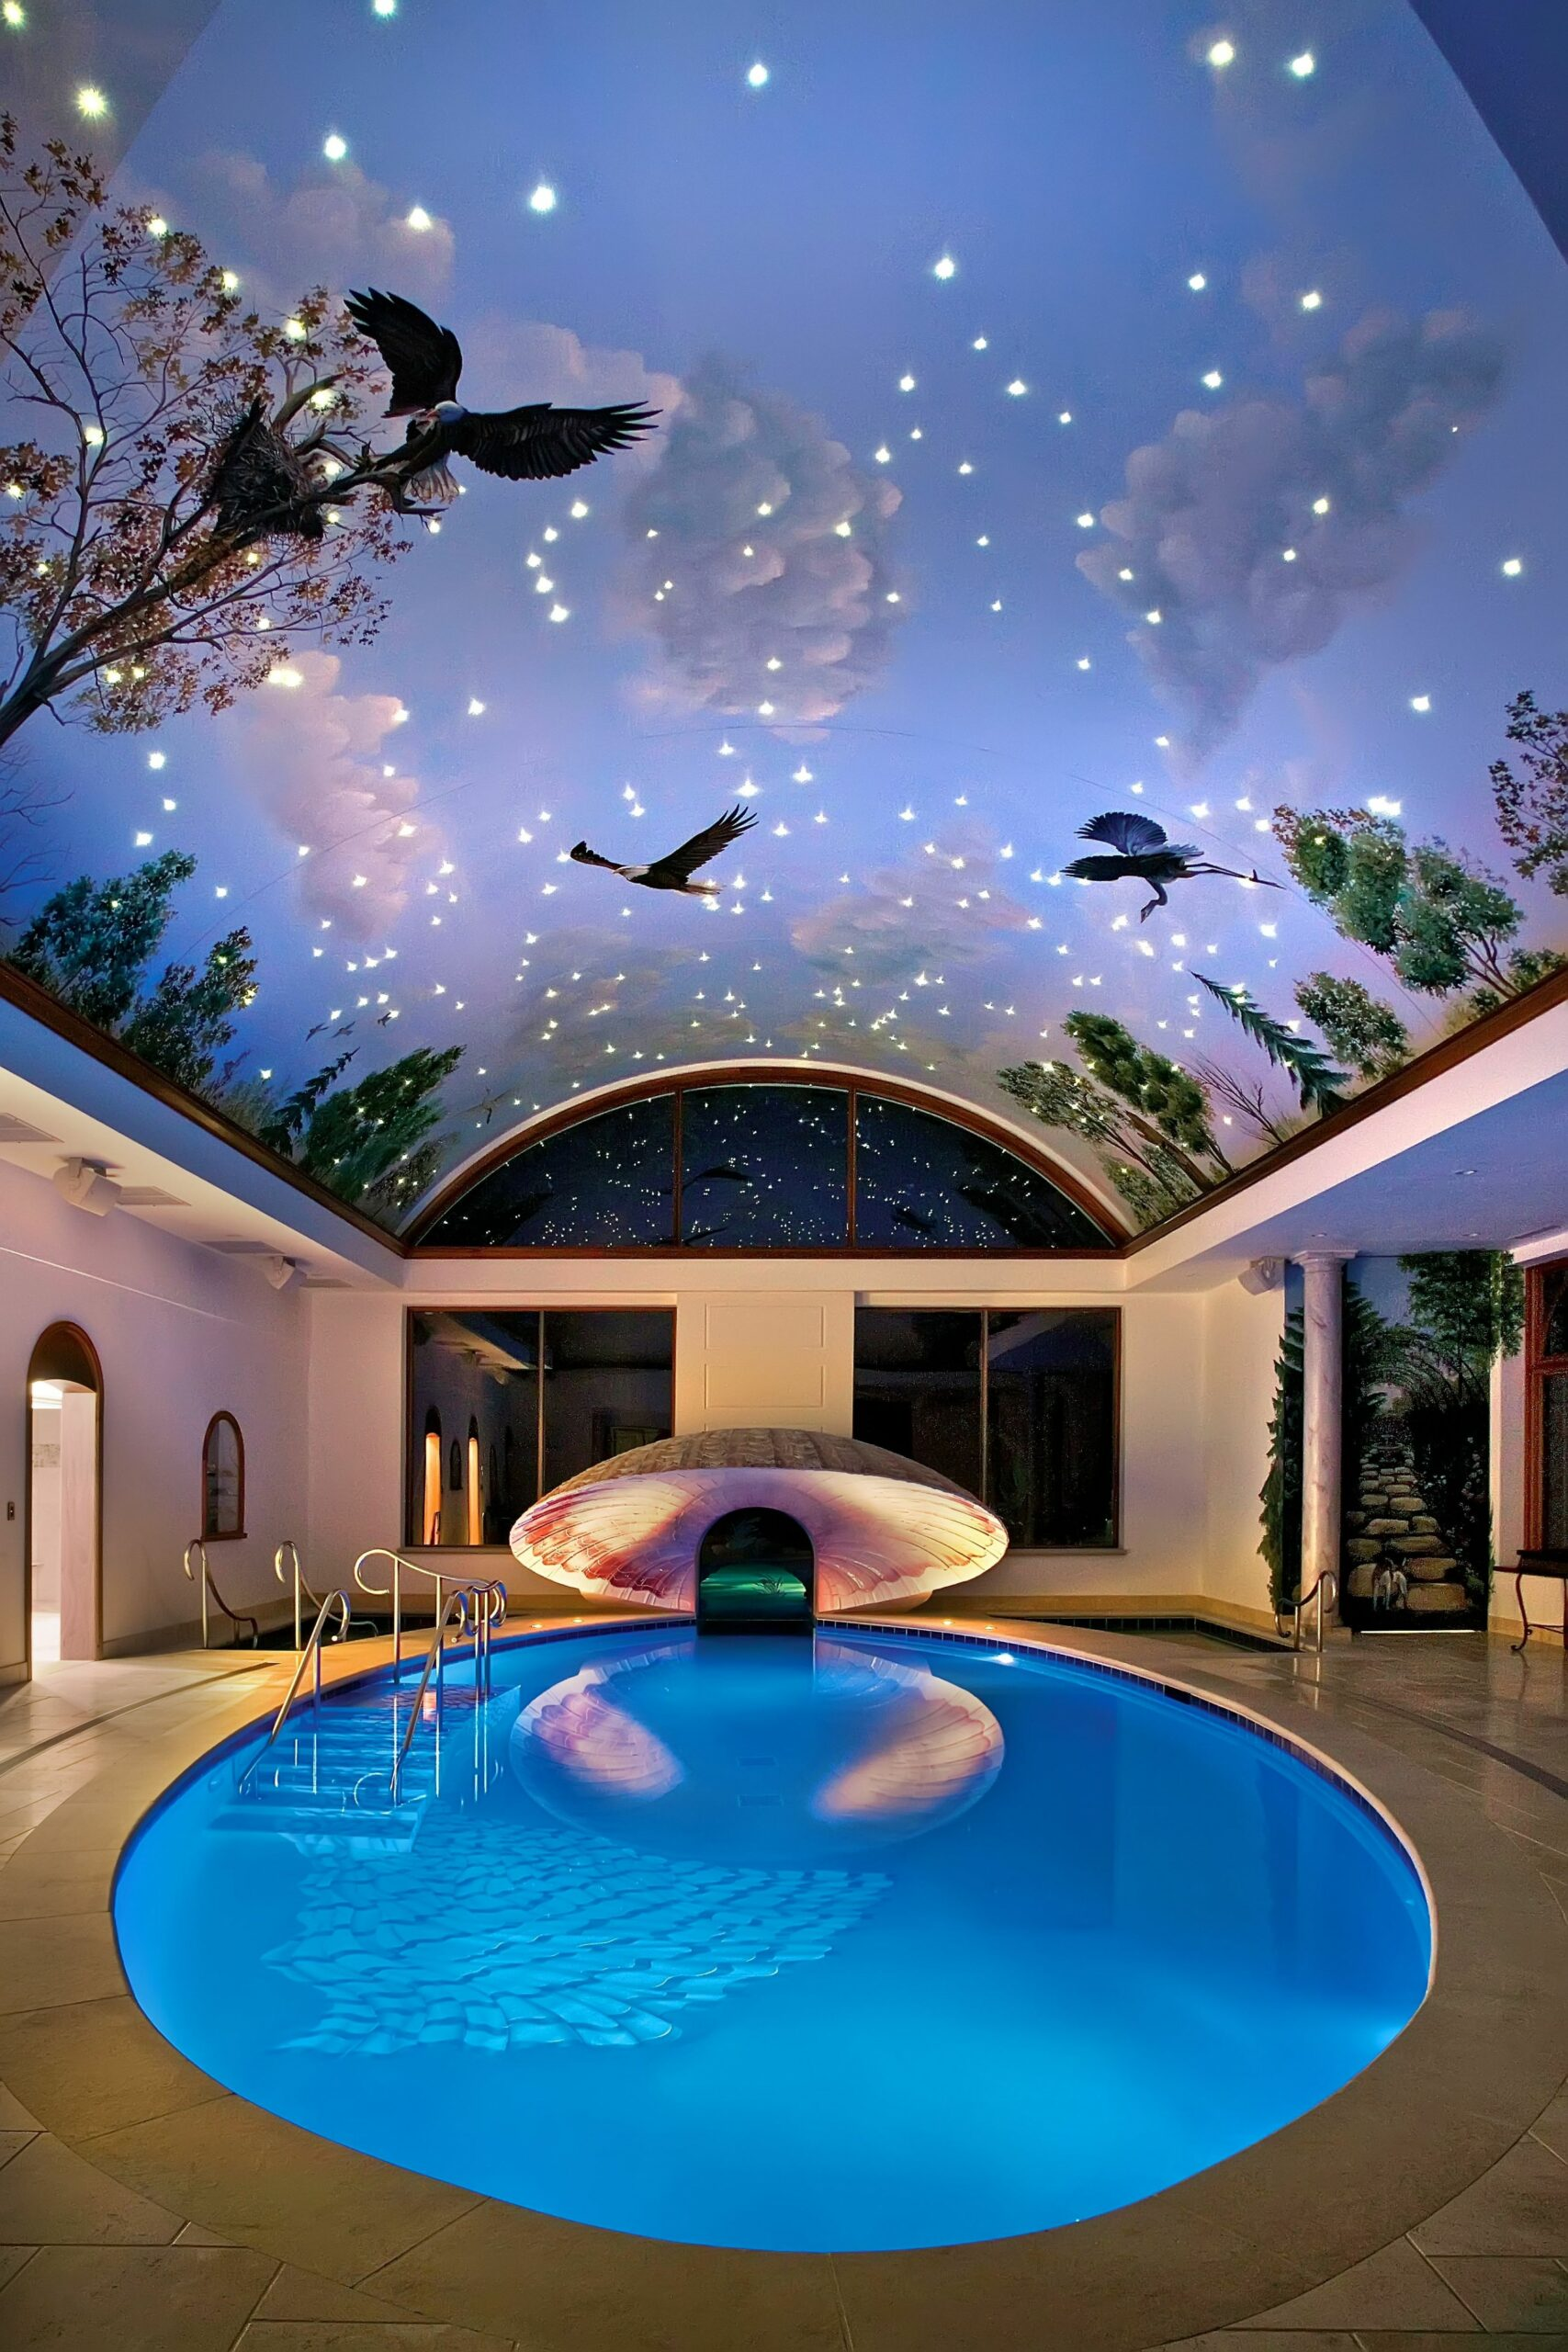 Fantasy Indoor Swimming Pool With Sky Mural Roof And Ceramic Floor ..